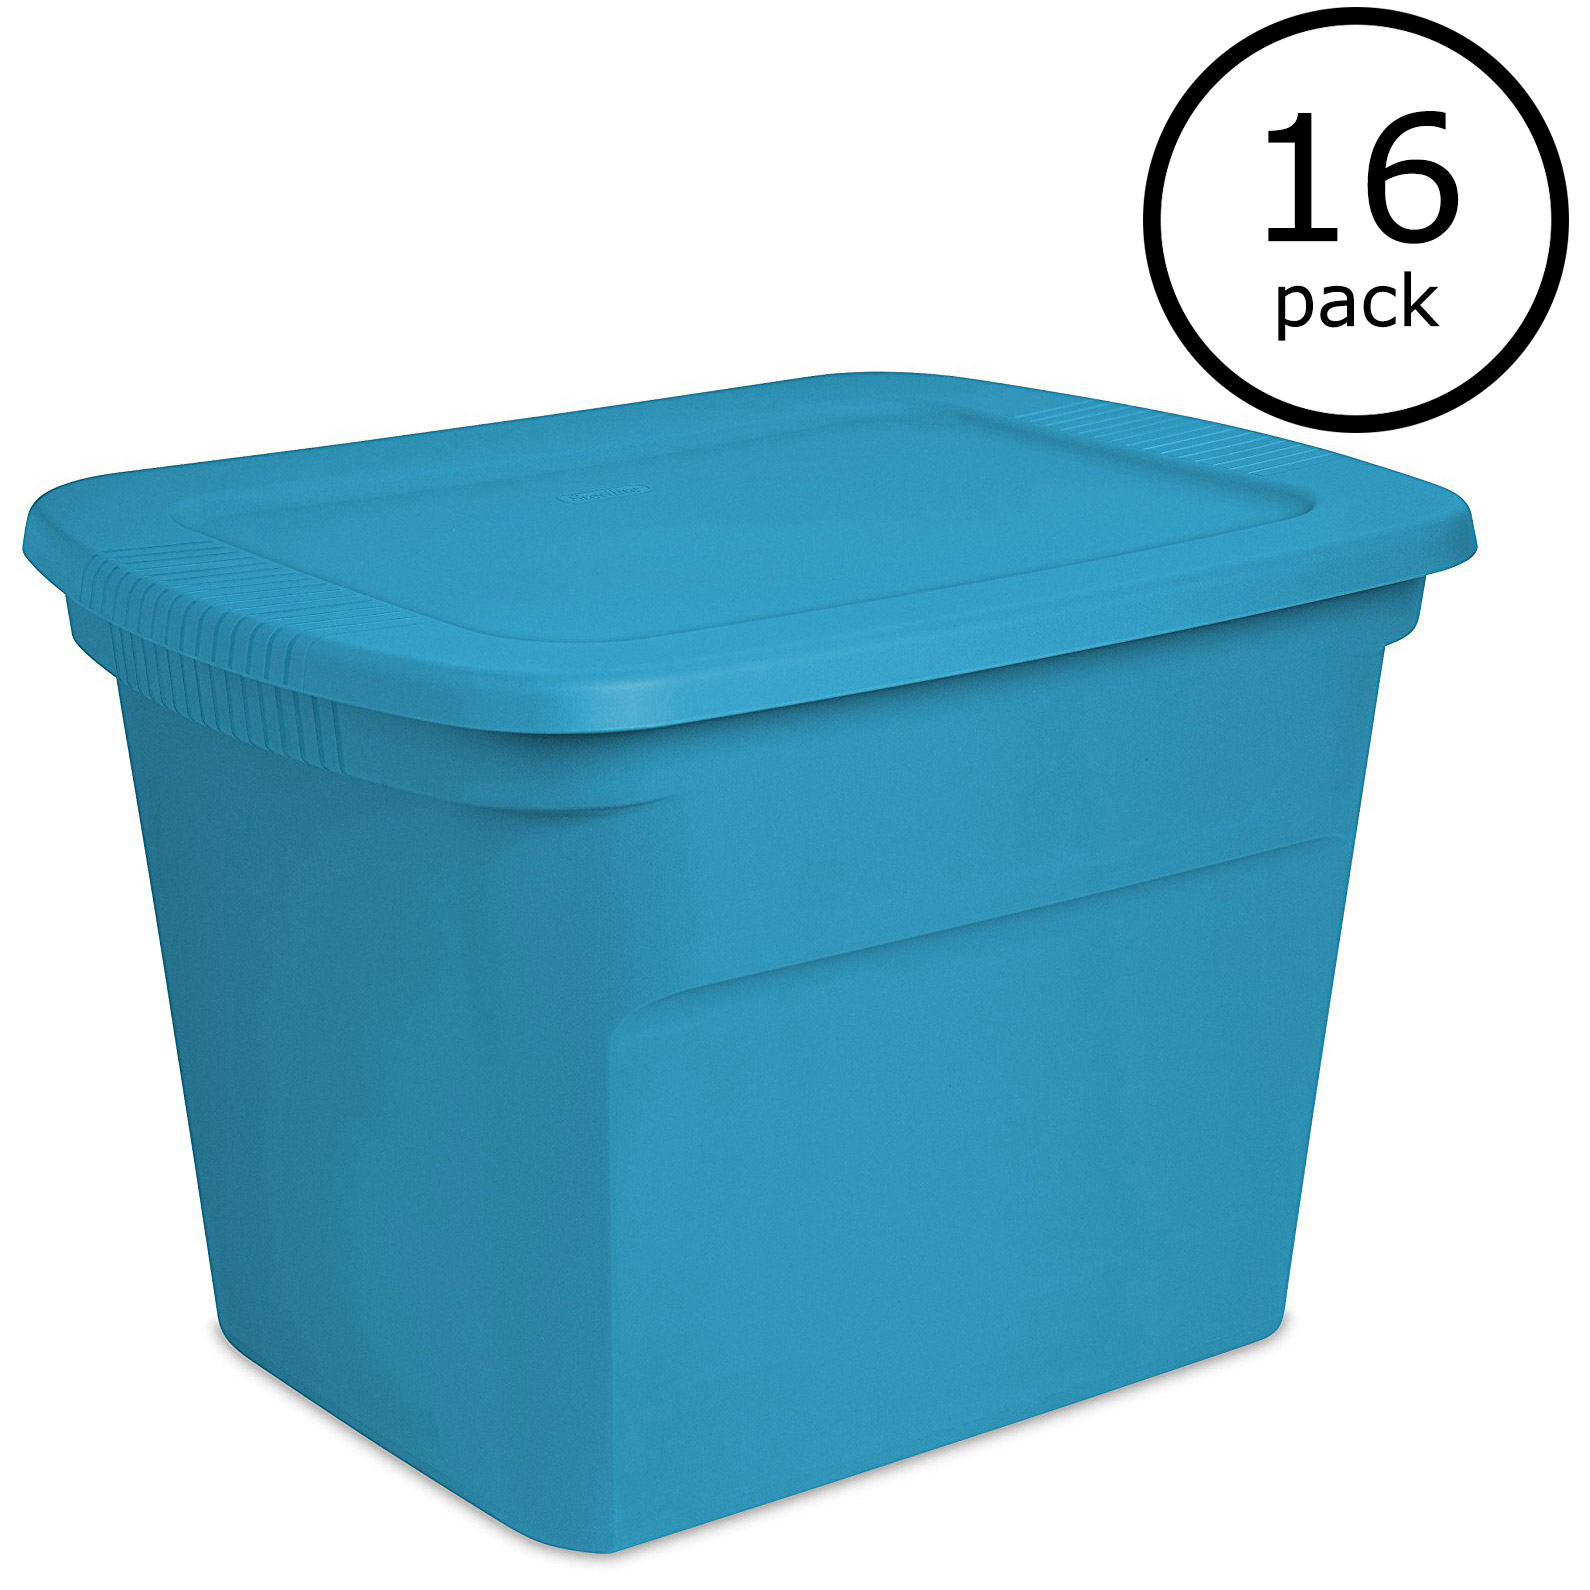 Sterilite 18 Gallon Plastic Container Storage Tote Box, Blue Aquarium (16 Pack)